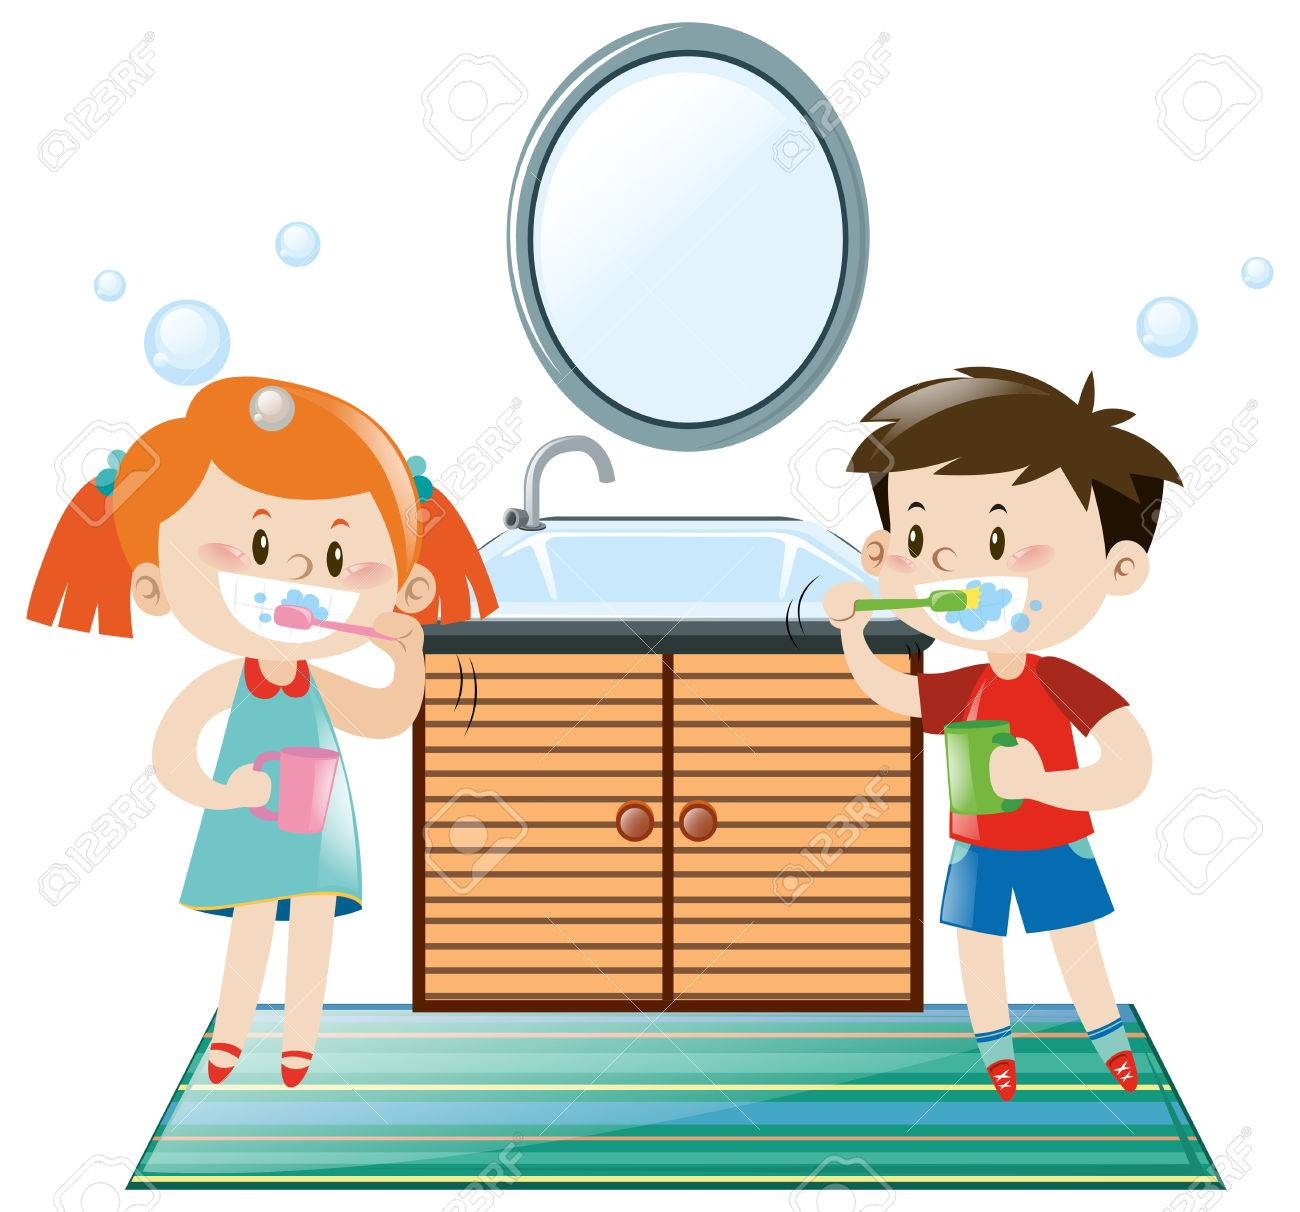 boy and girl brushing teeth in bathroom illustration royalty free